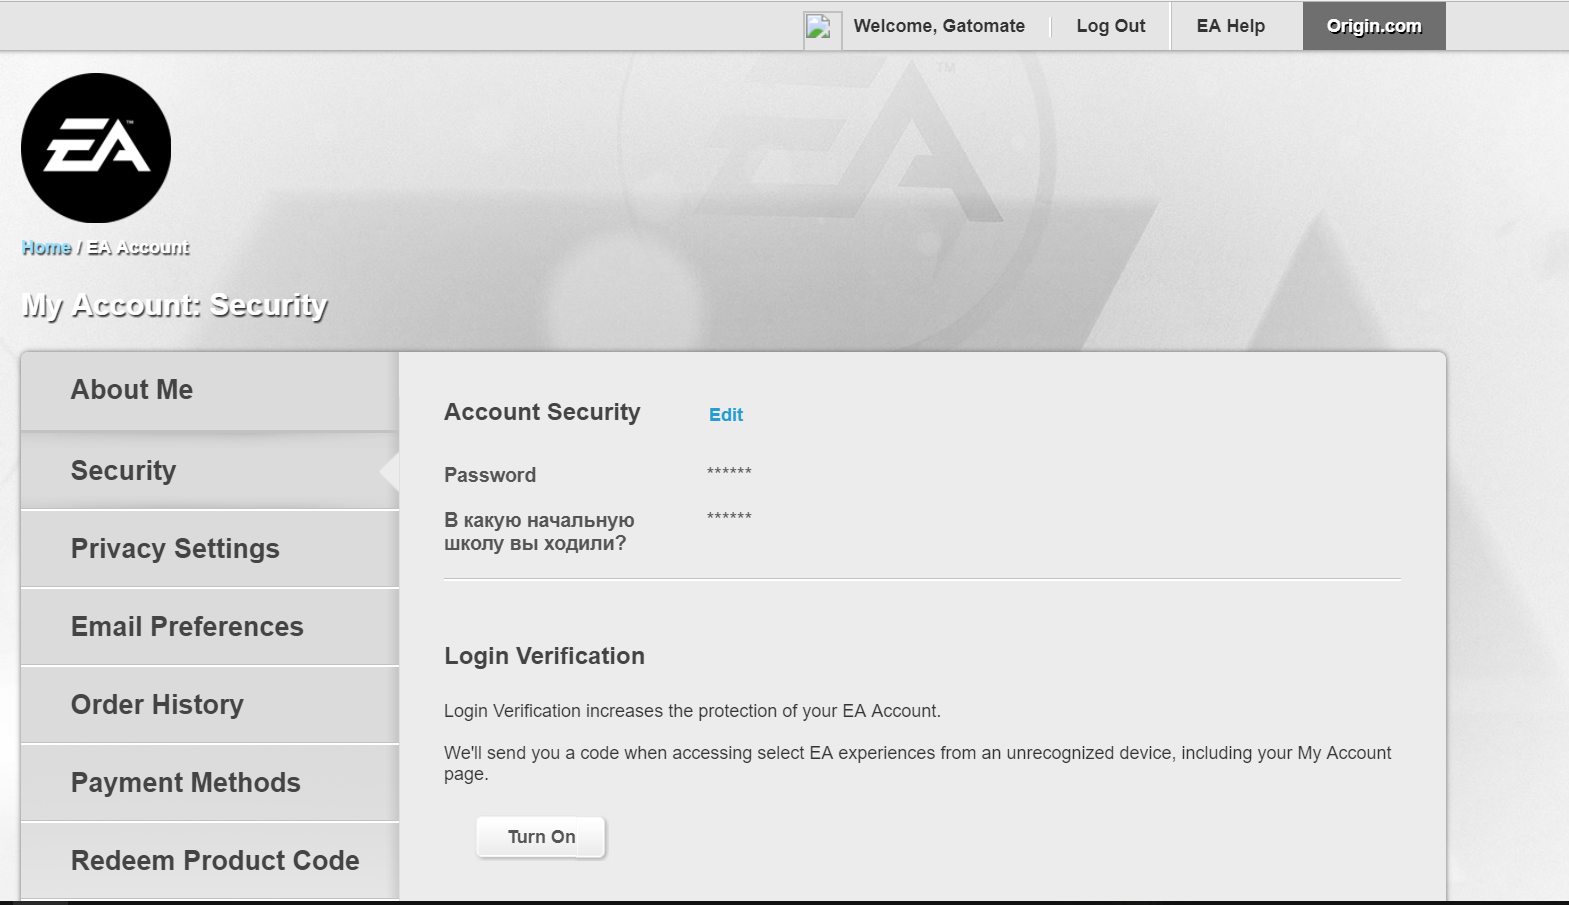 Solved: My account has been hacked and security question has